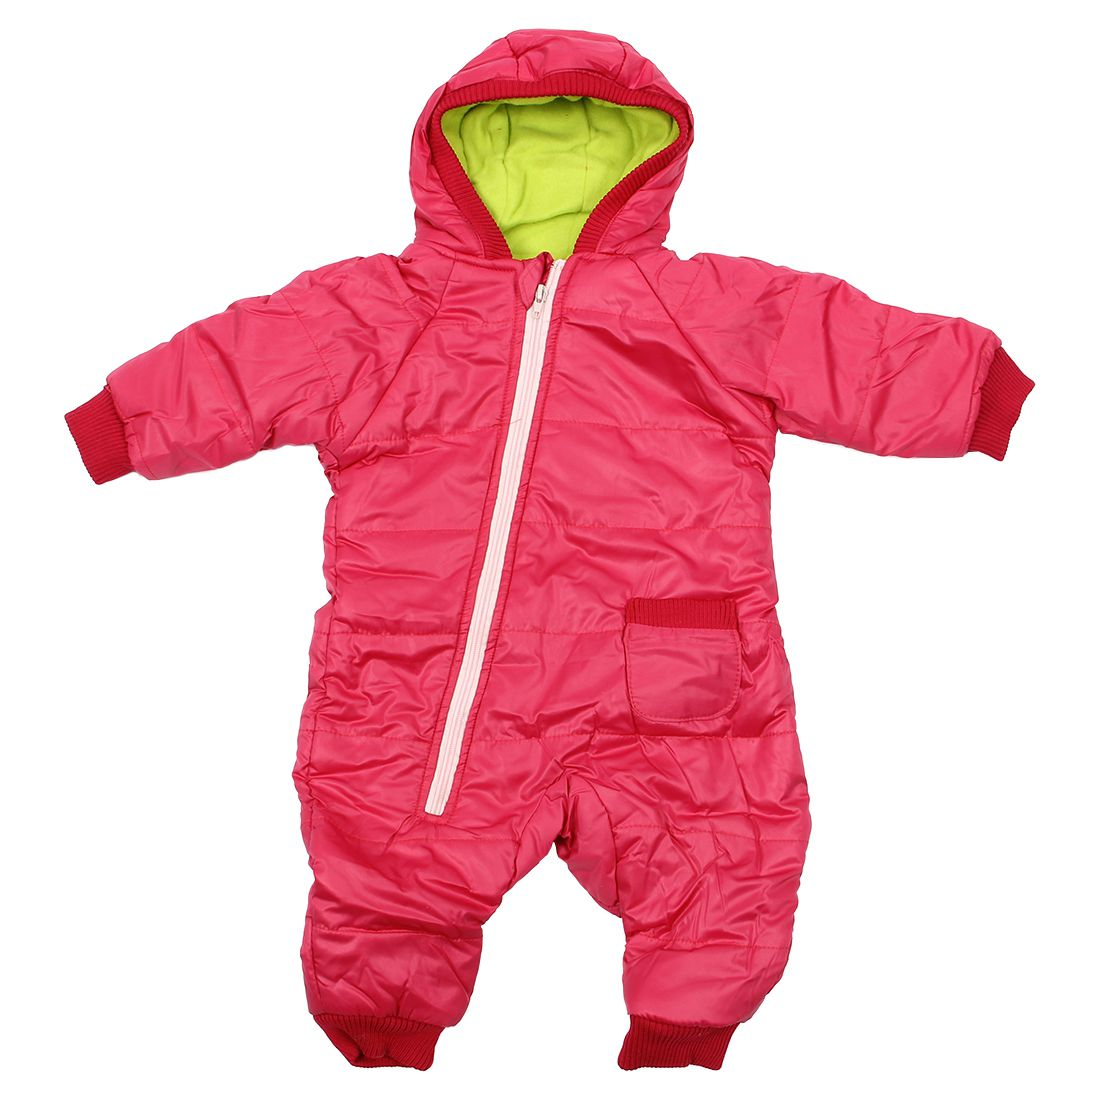 Winter Baby Girl Boy Kid Toddler Snowsuit Coat Jacket Jumper Outwear Clothes 1PC